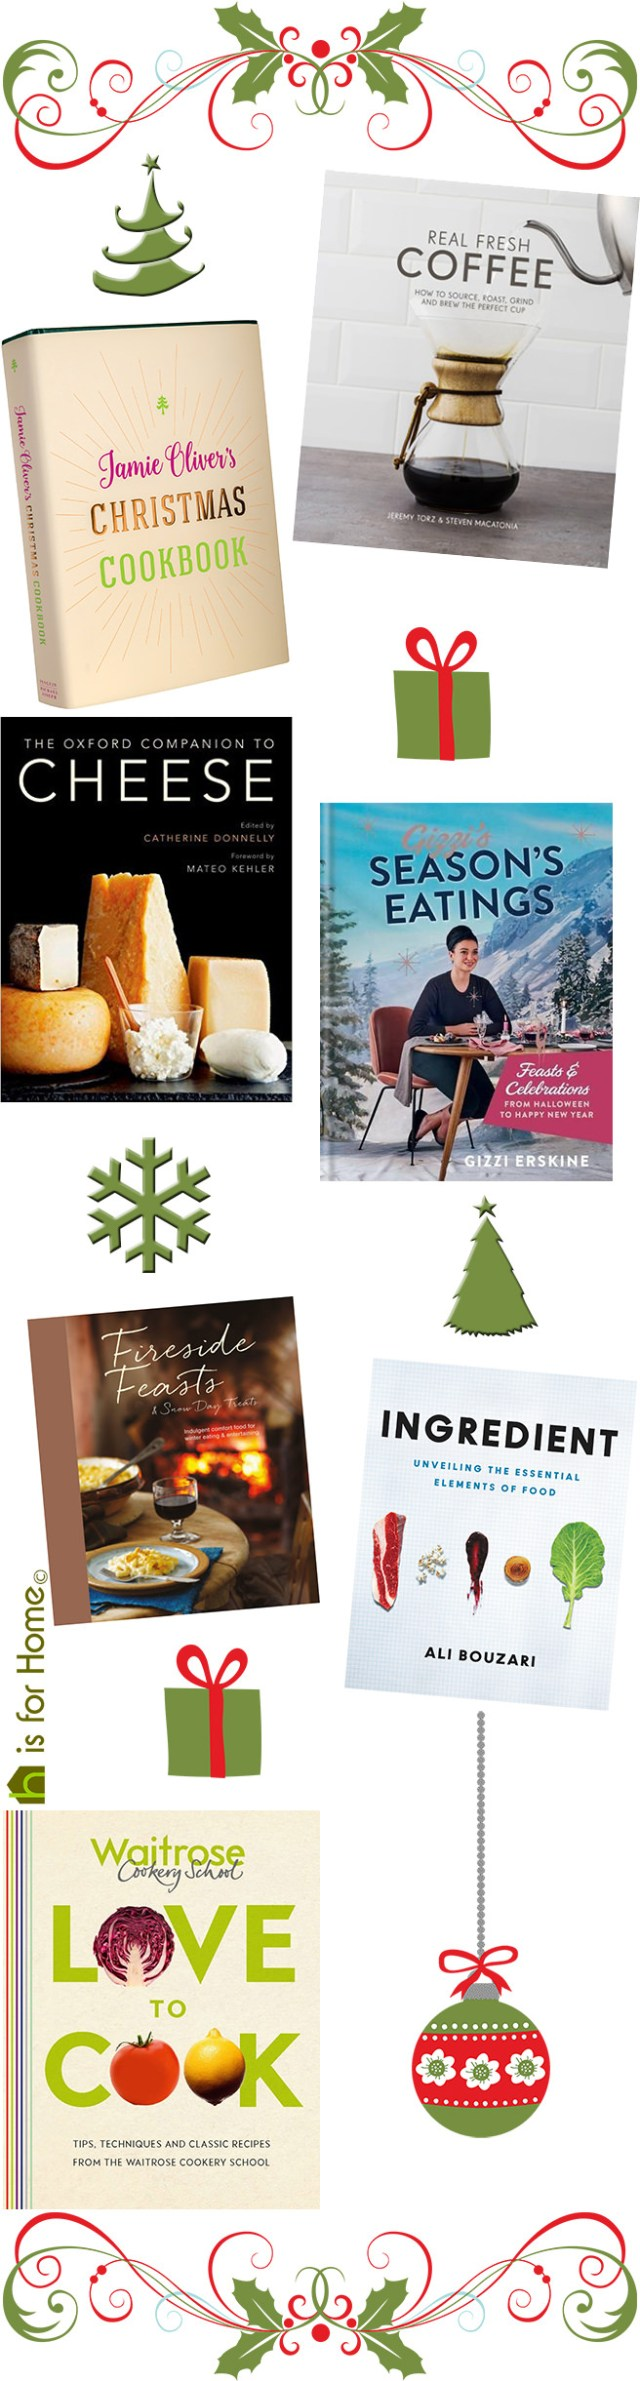 Newly published foodie books | H is for Home